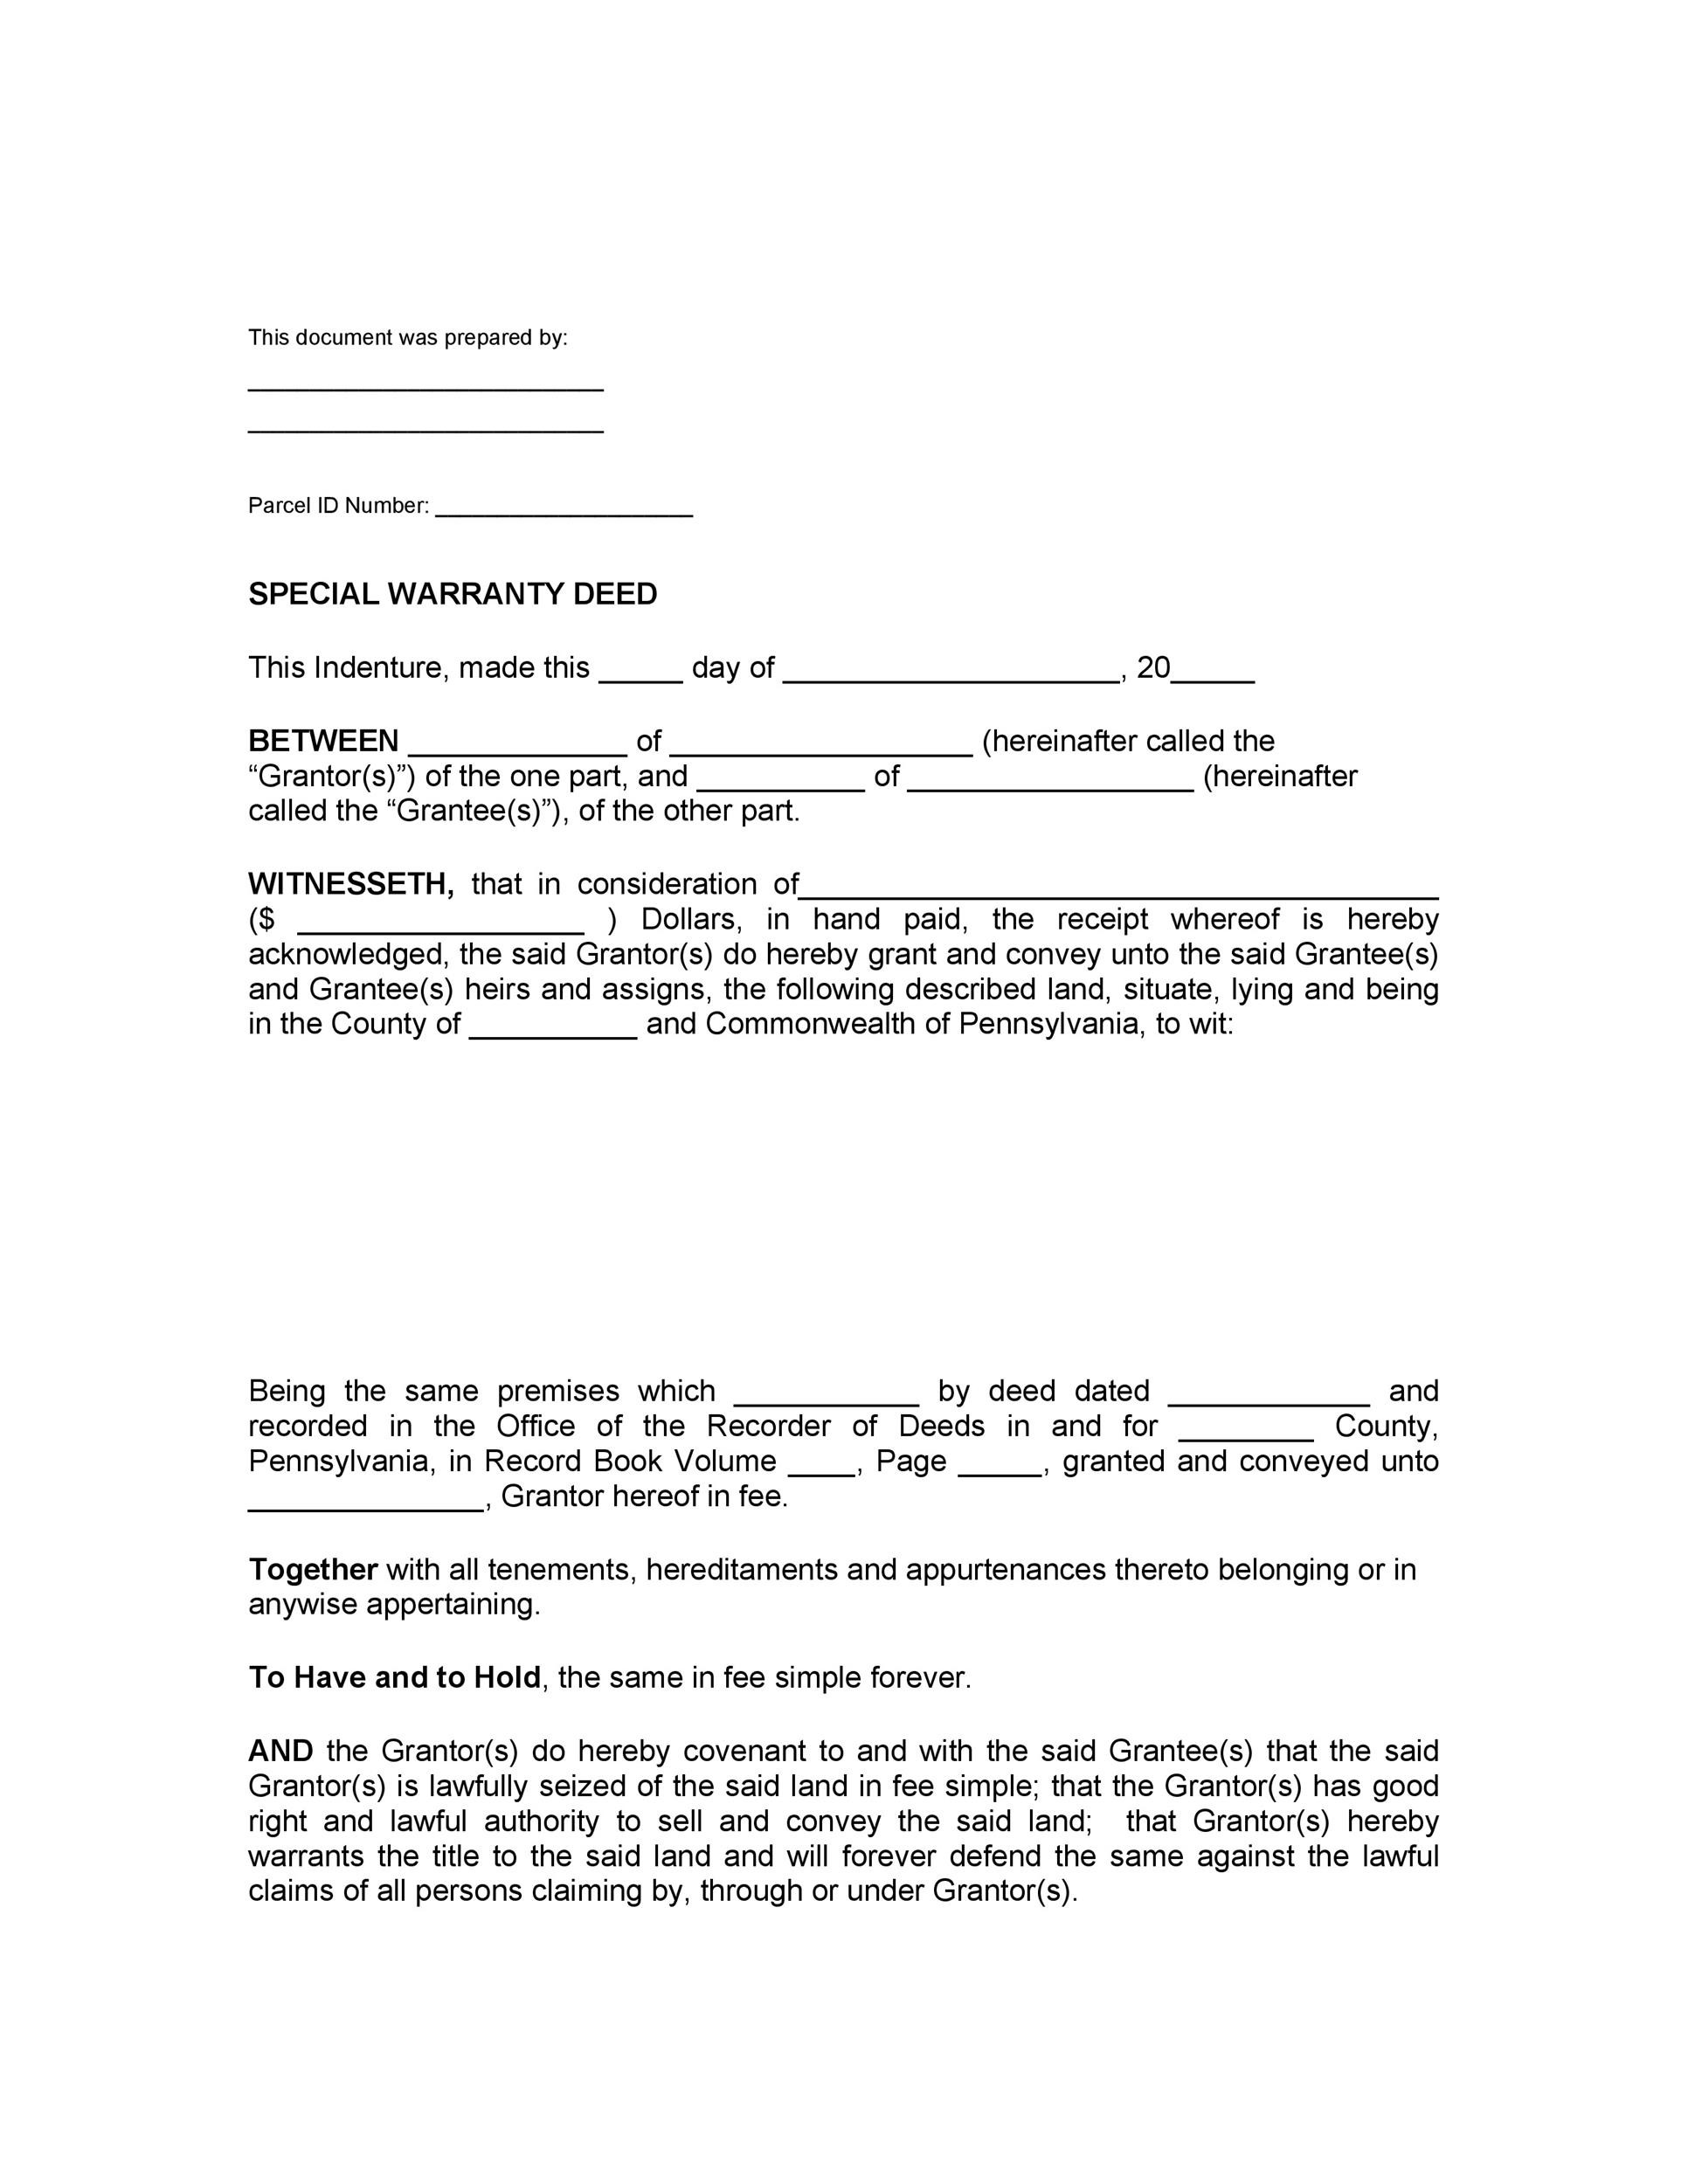 Free Warranty deed template 19